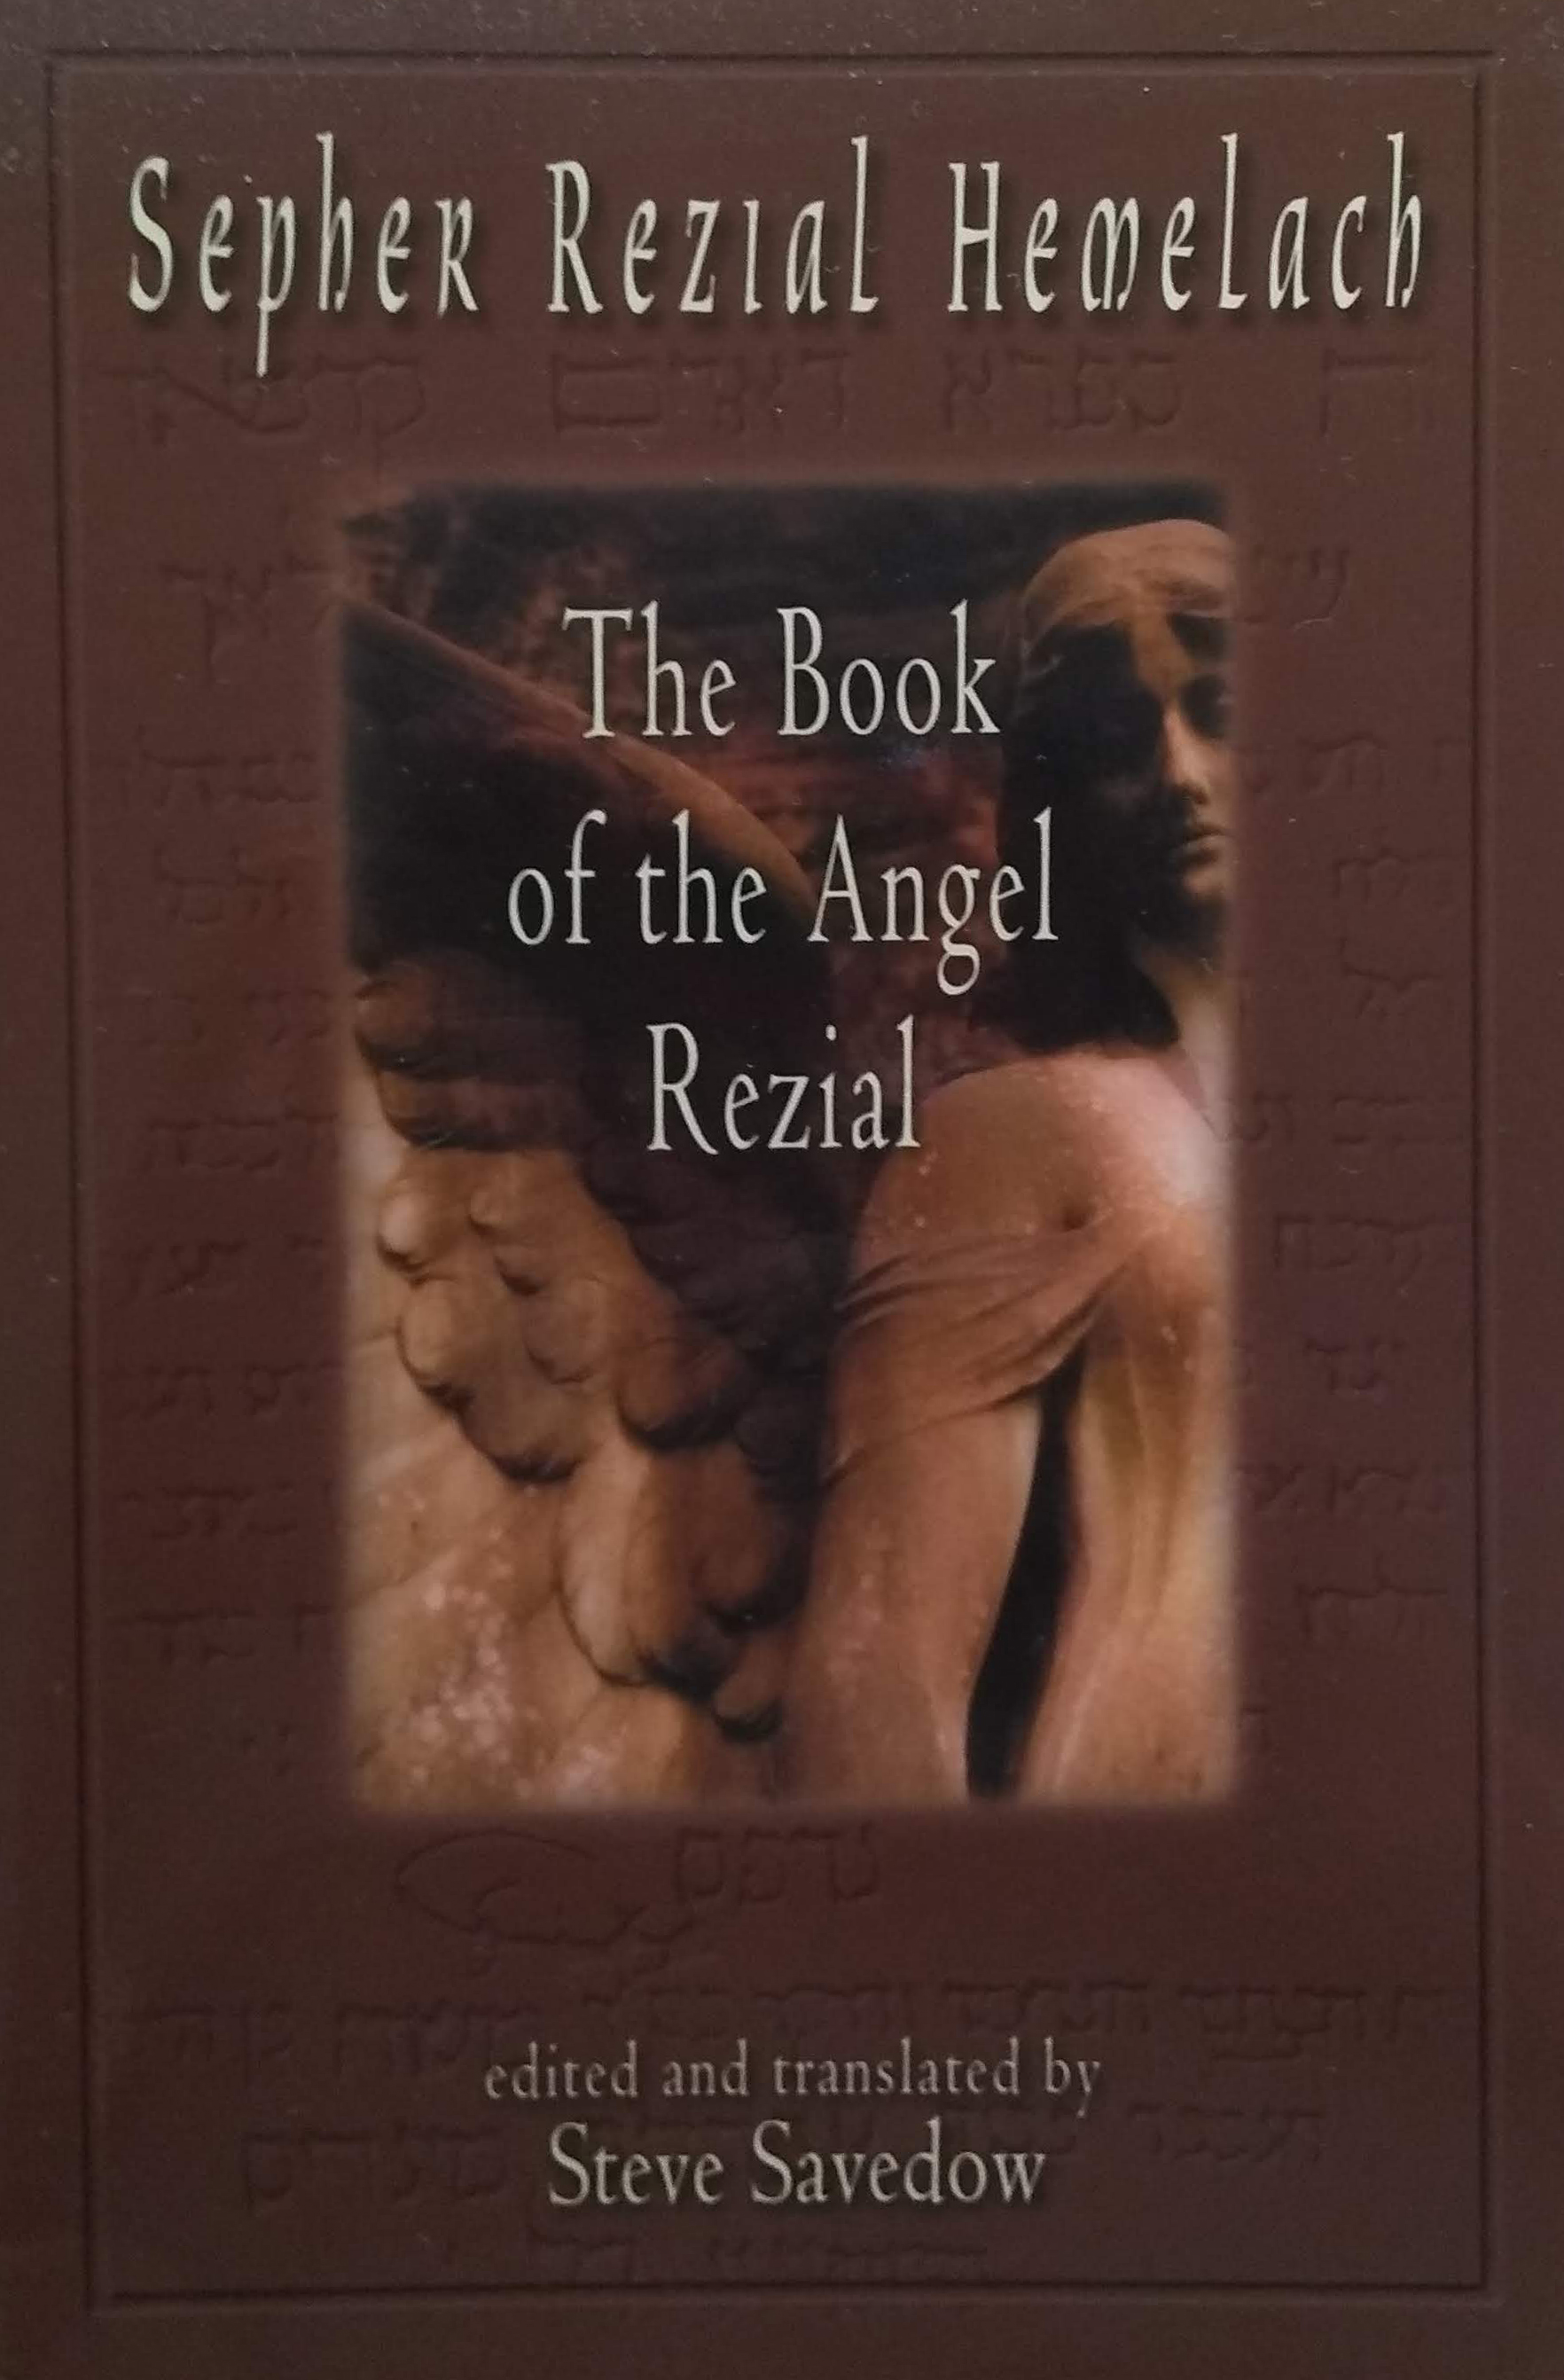 The book of the Angel Rezial